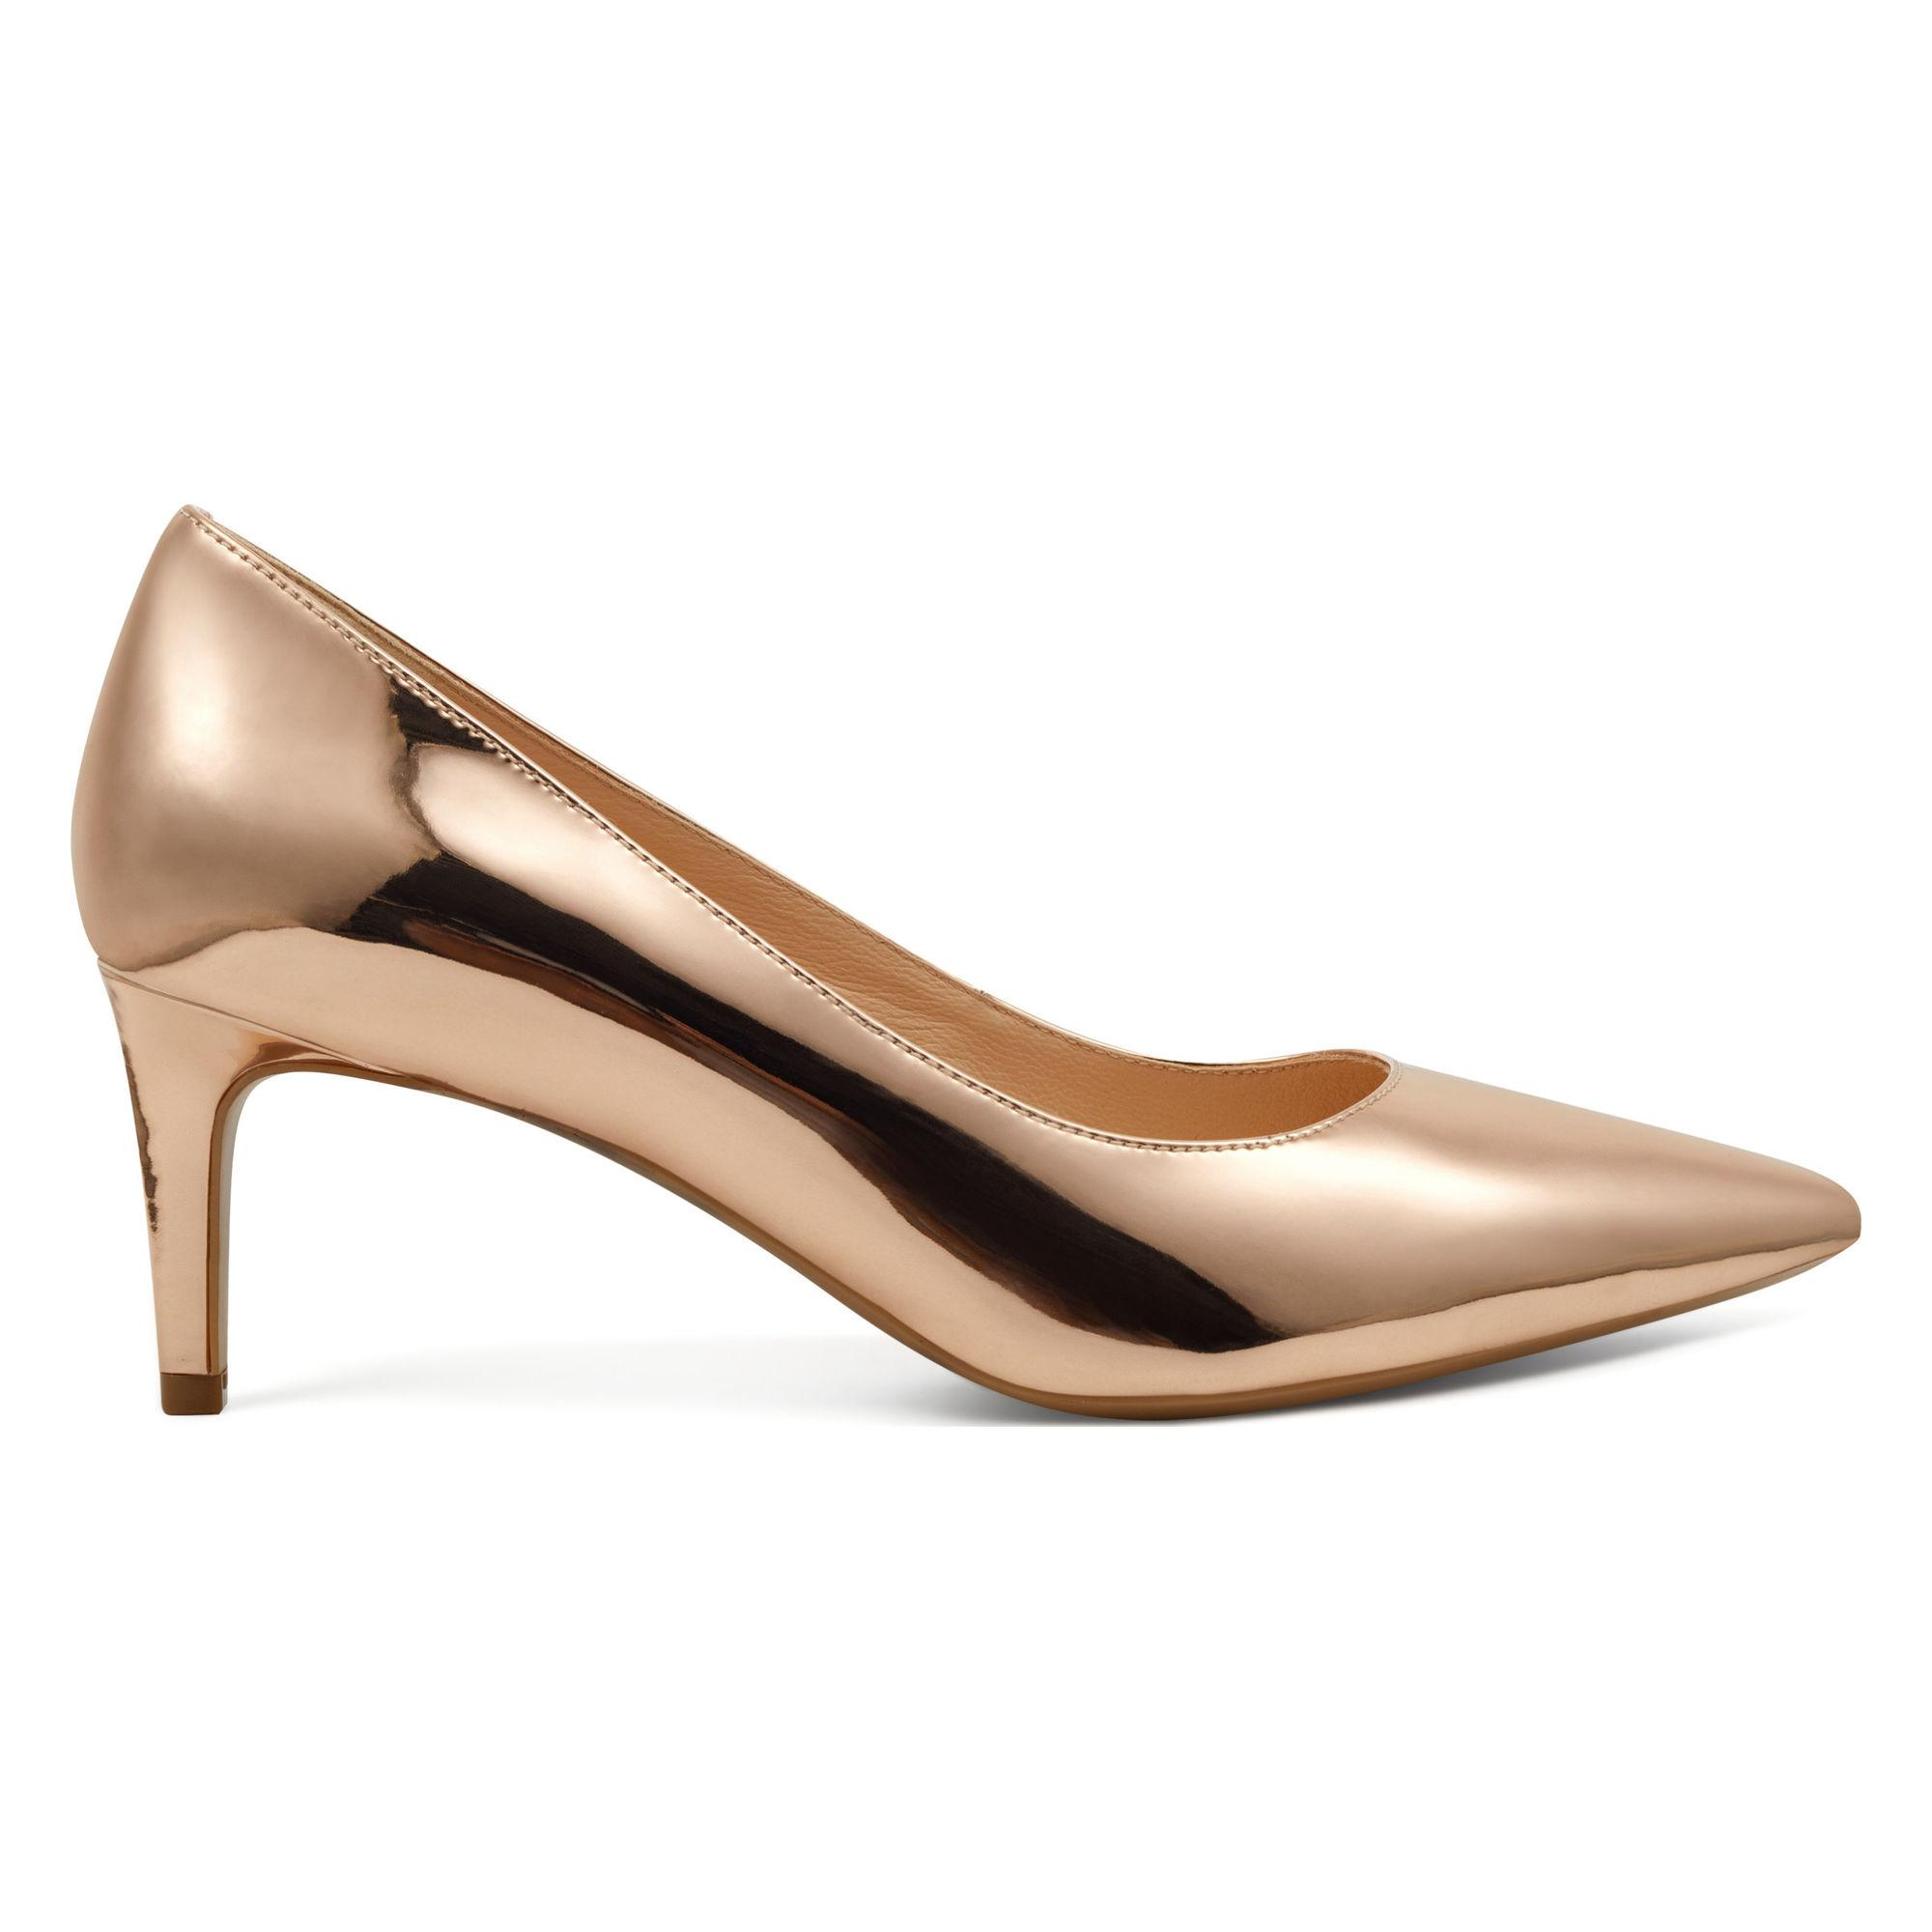 3c9ee4800a6 Nine West Soho Pointy Toe Pumps - Lyst